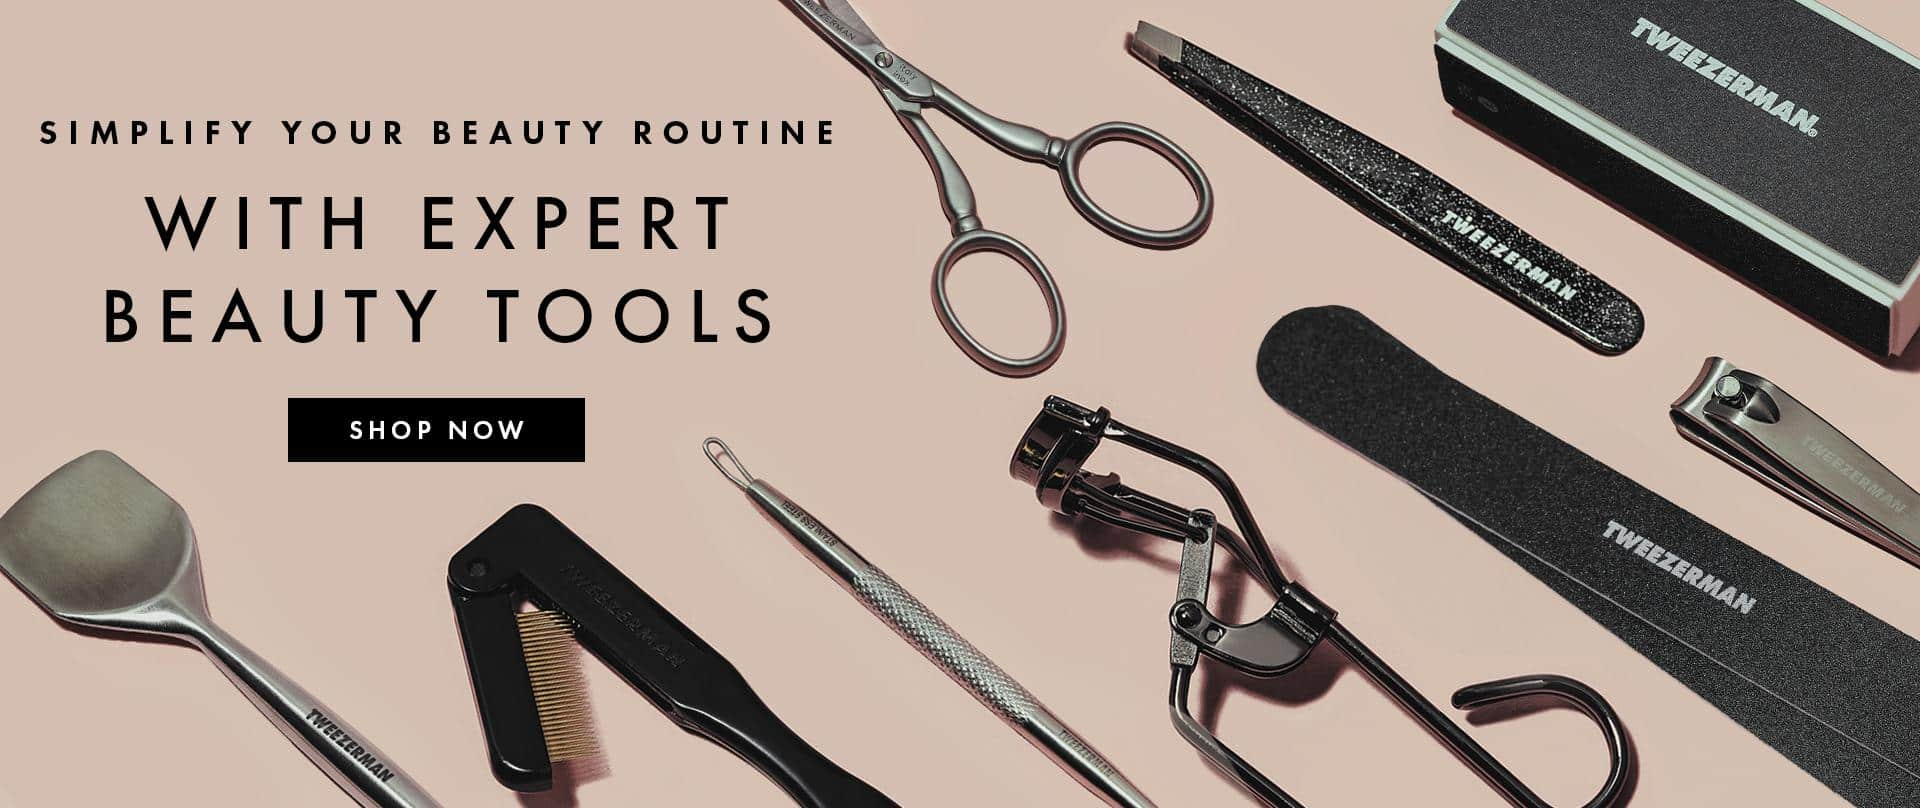 Tweezerman's selection of expert beauty tools to simplify your everyday grooming routine.